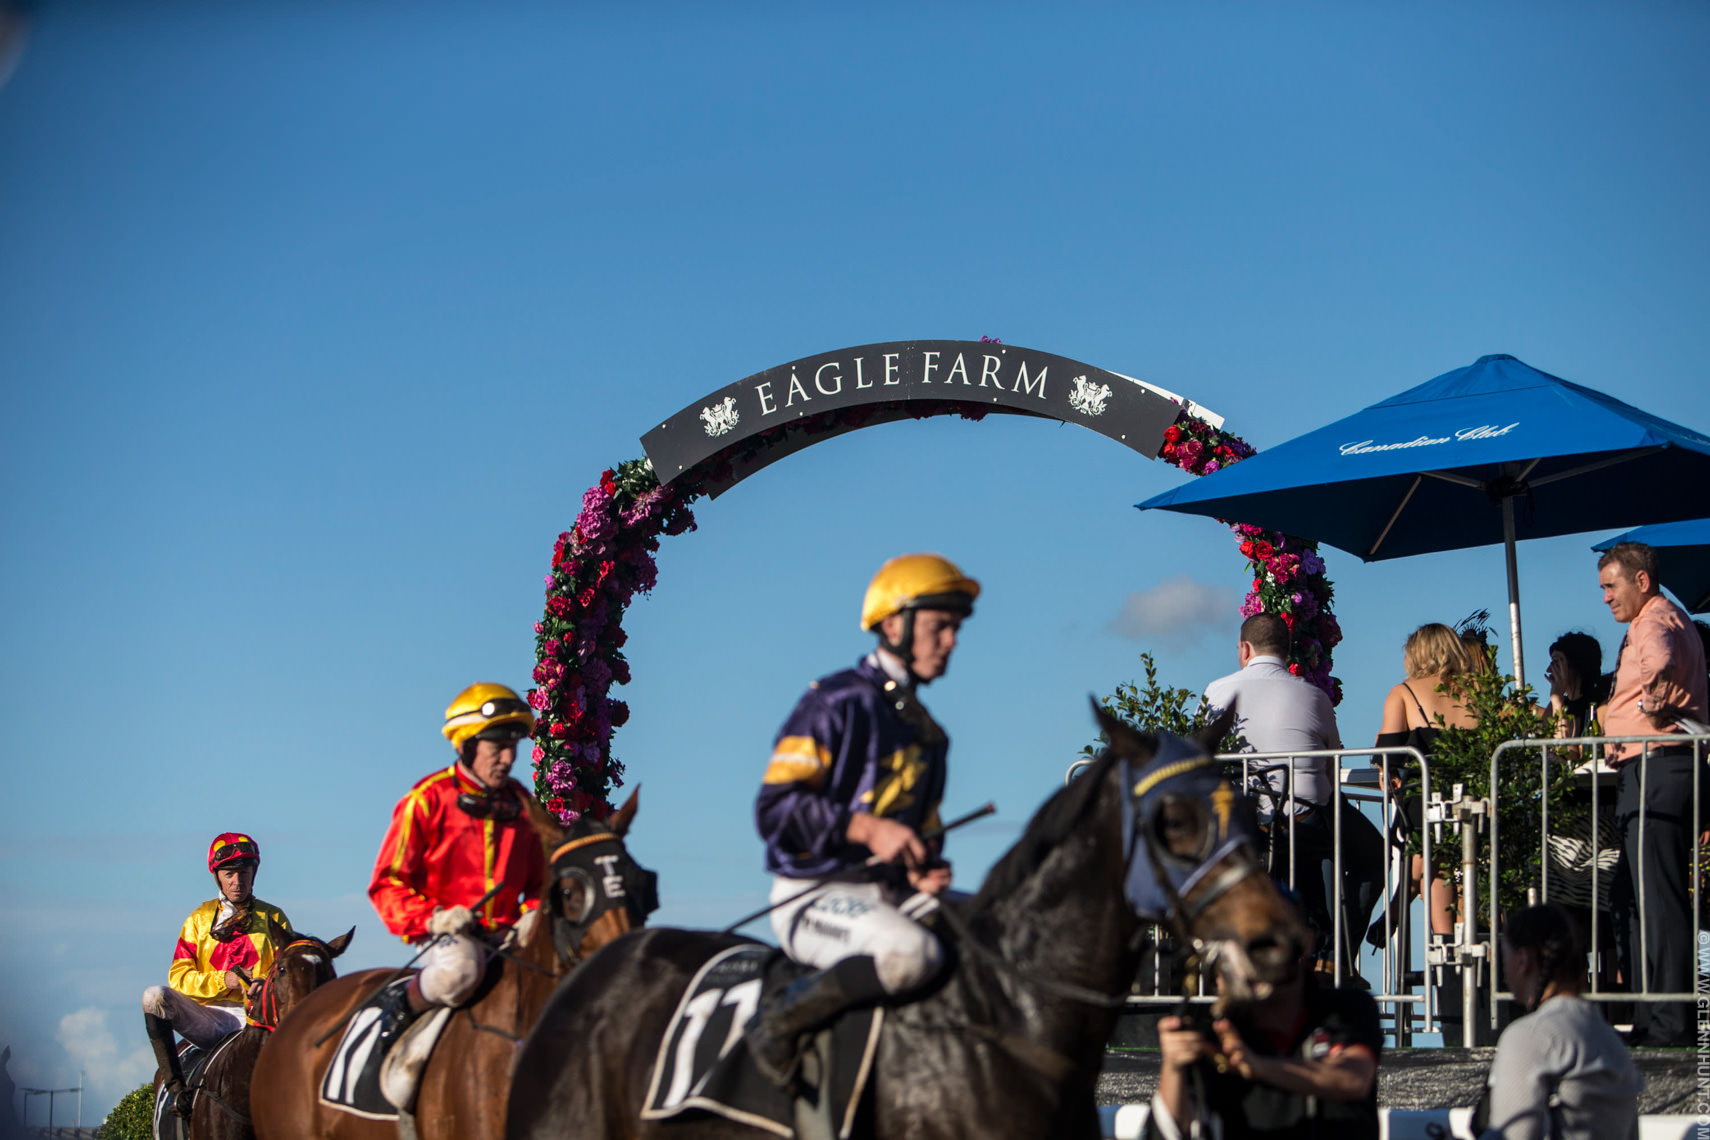 Eagle Farm Brisbane Racing Club